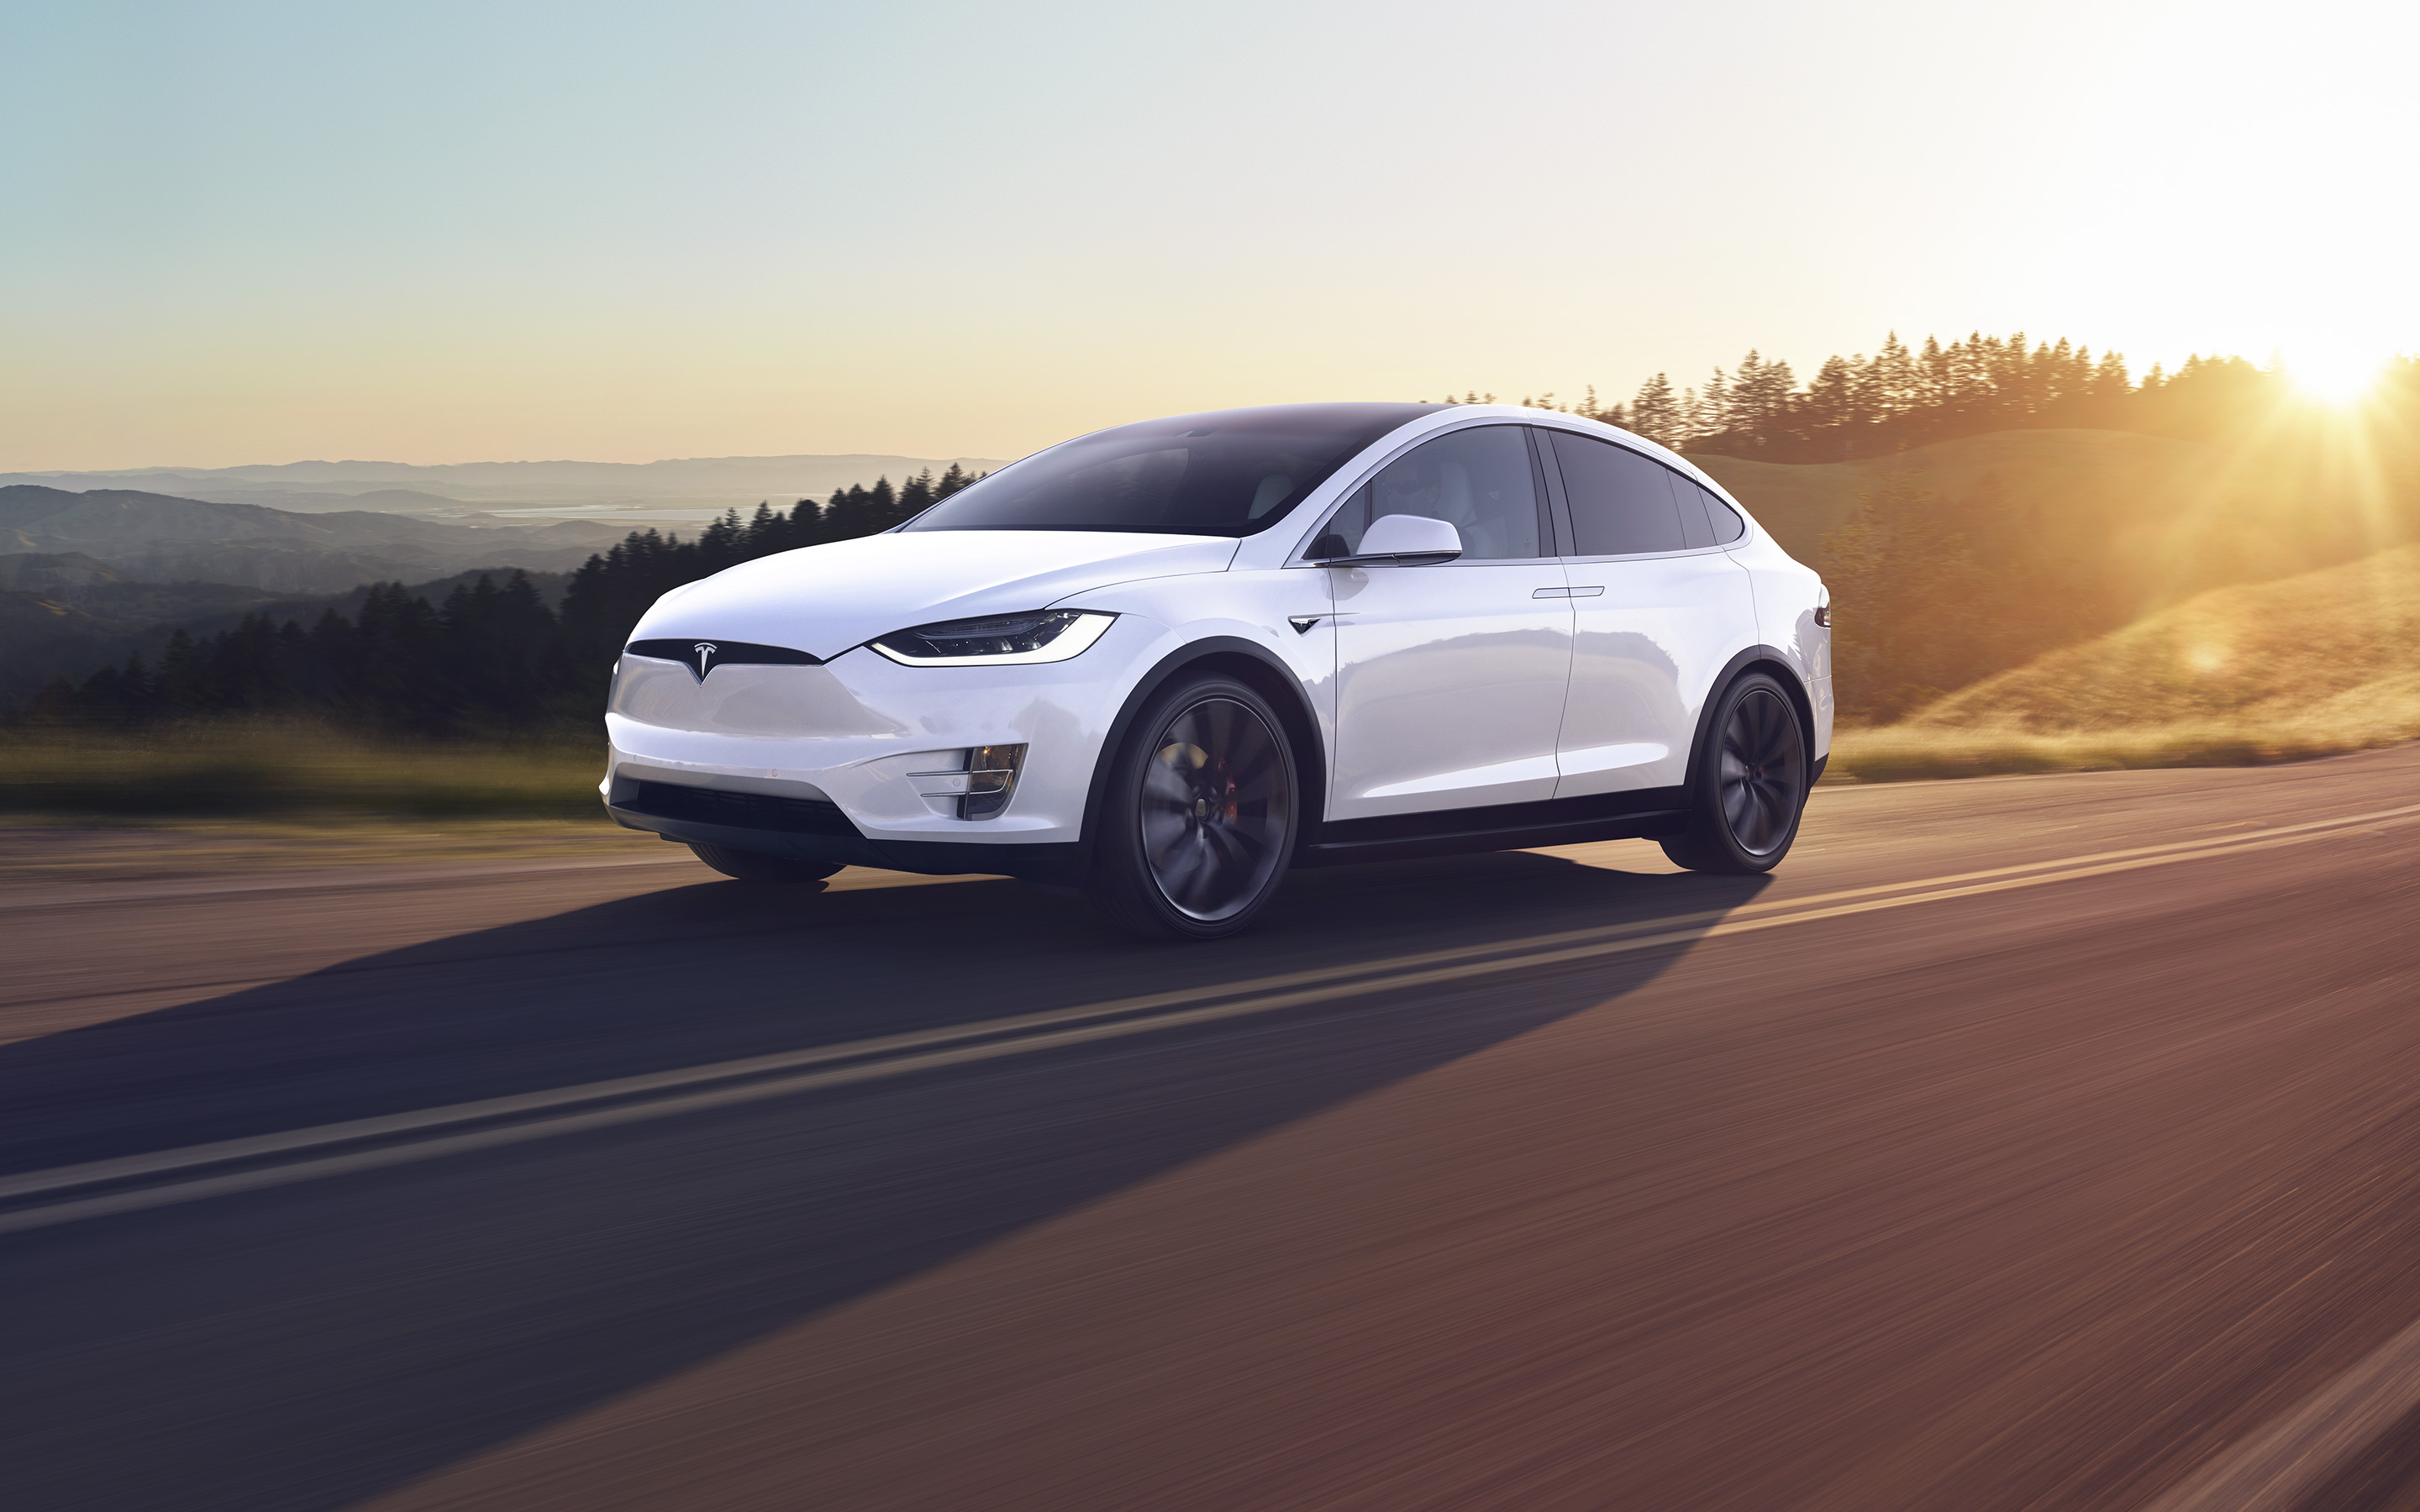 Pearl white Model X driving on a hillside highway during sunset